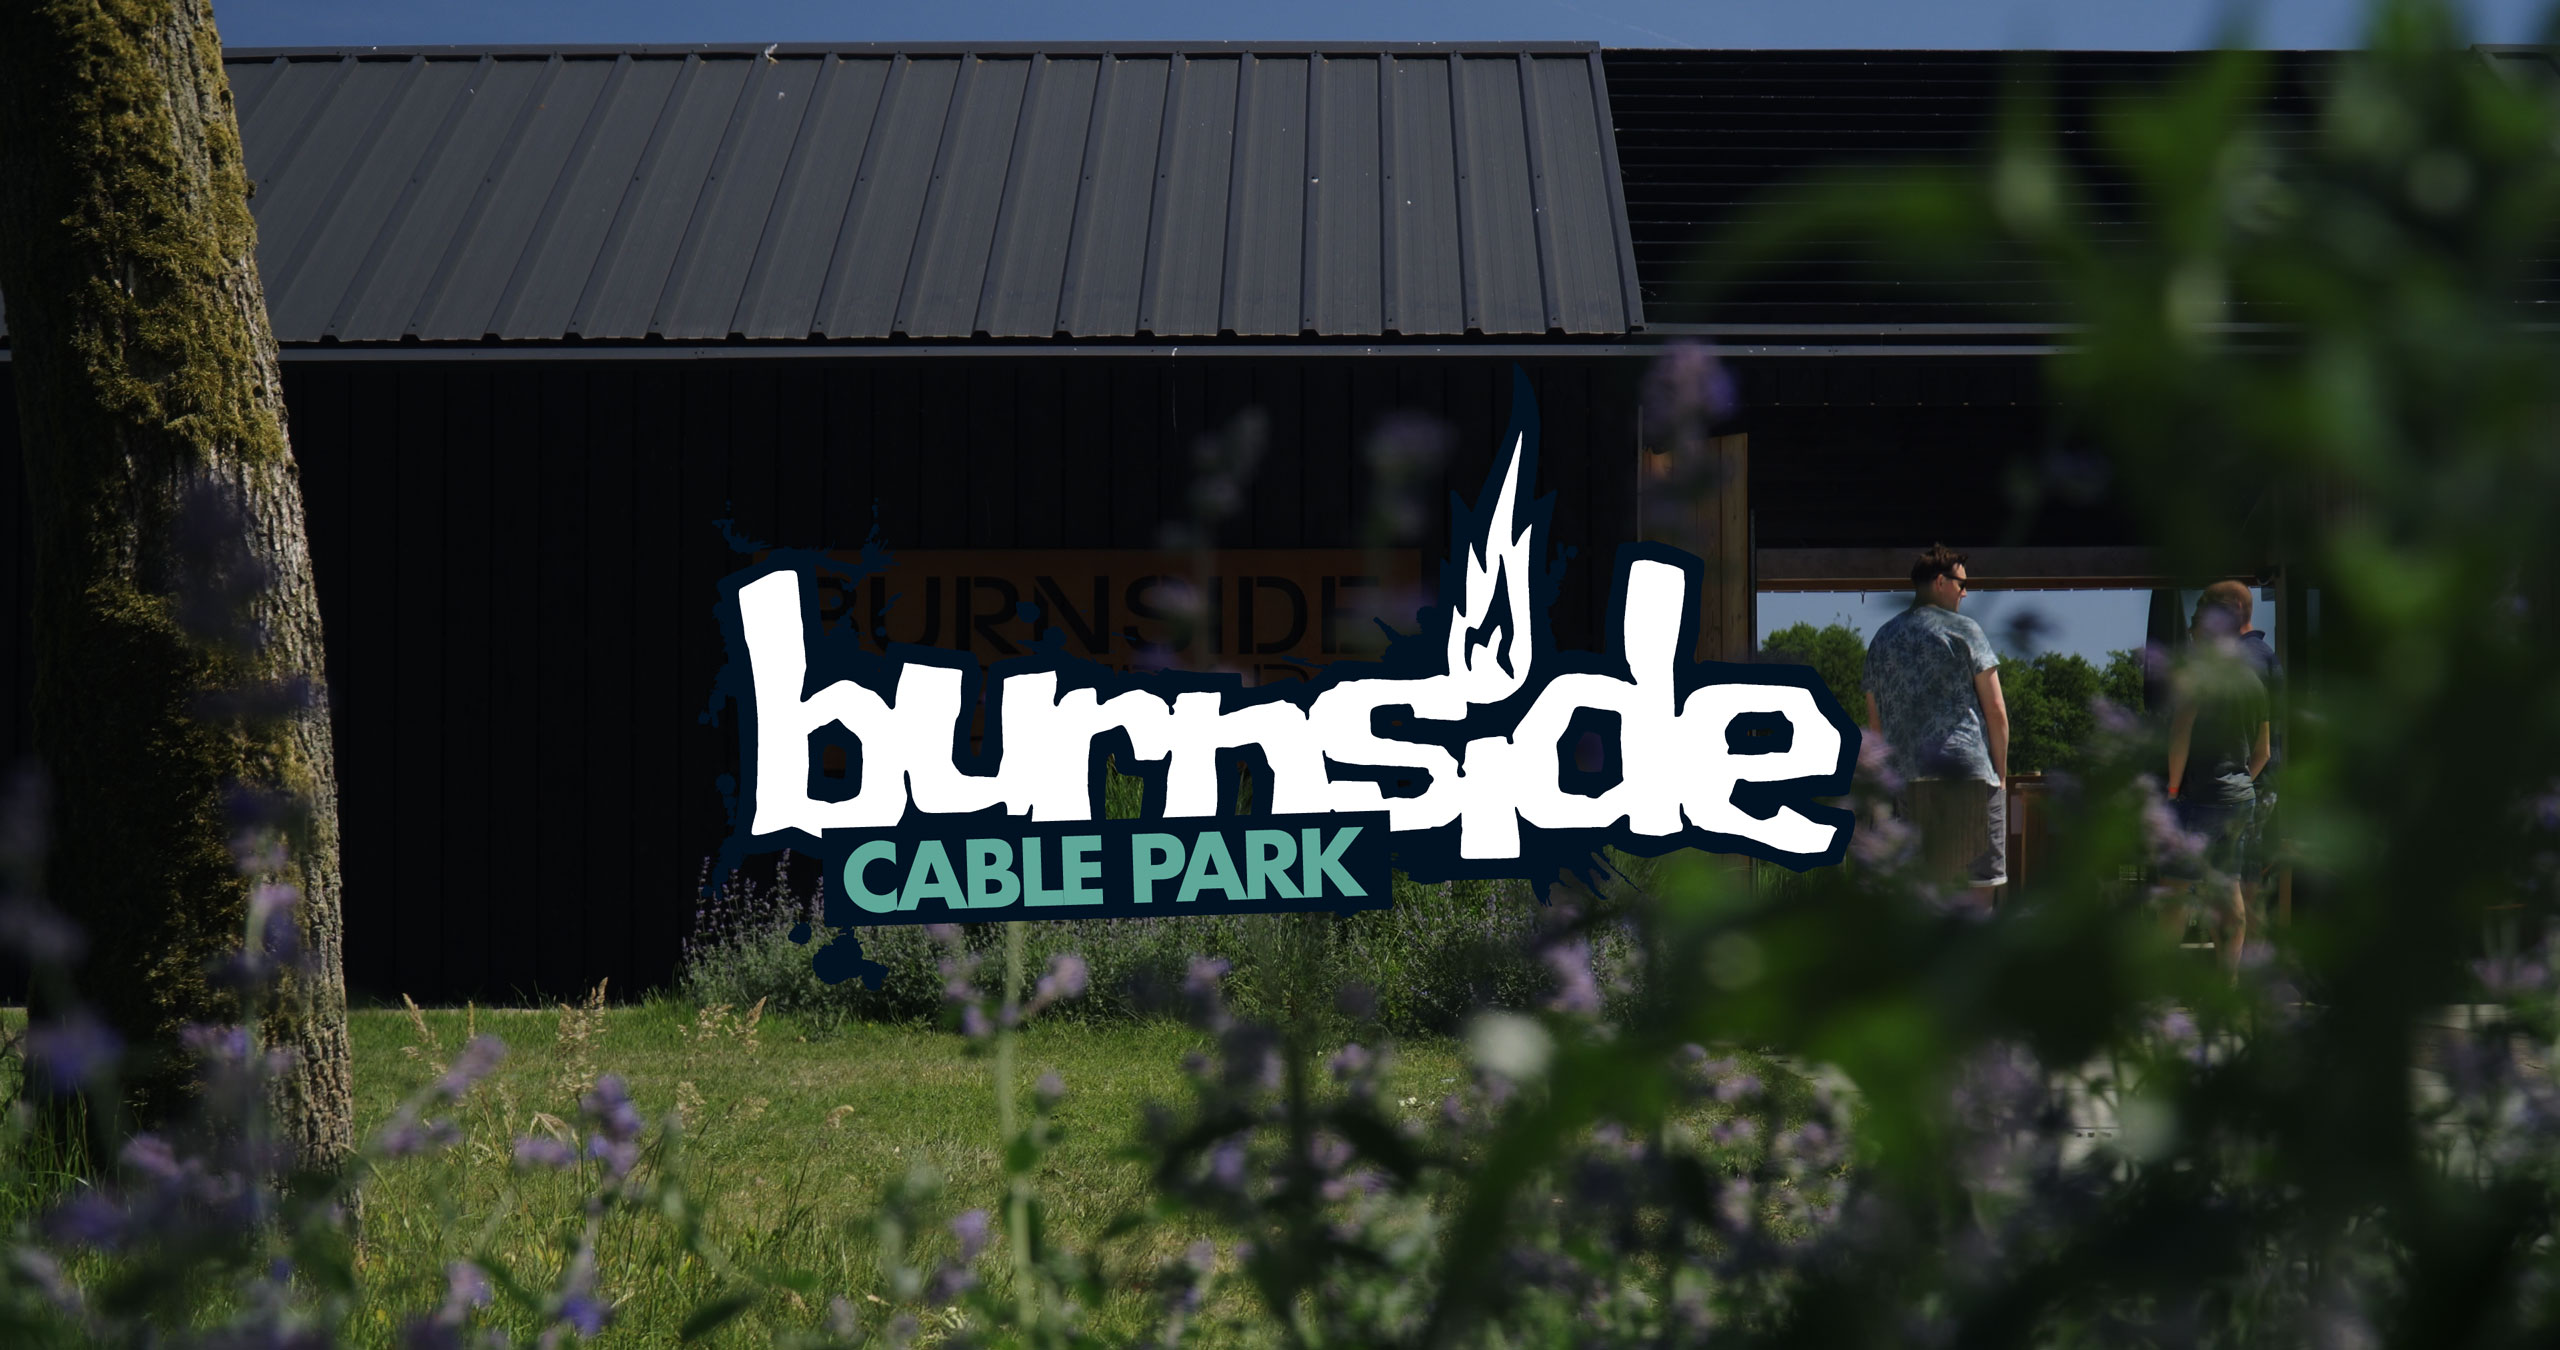 The Burnside Cabel park experience